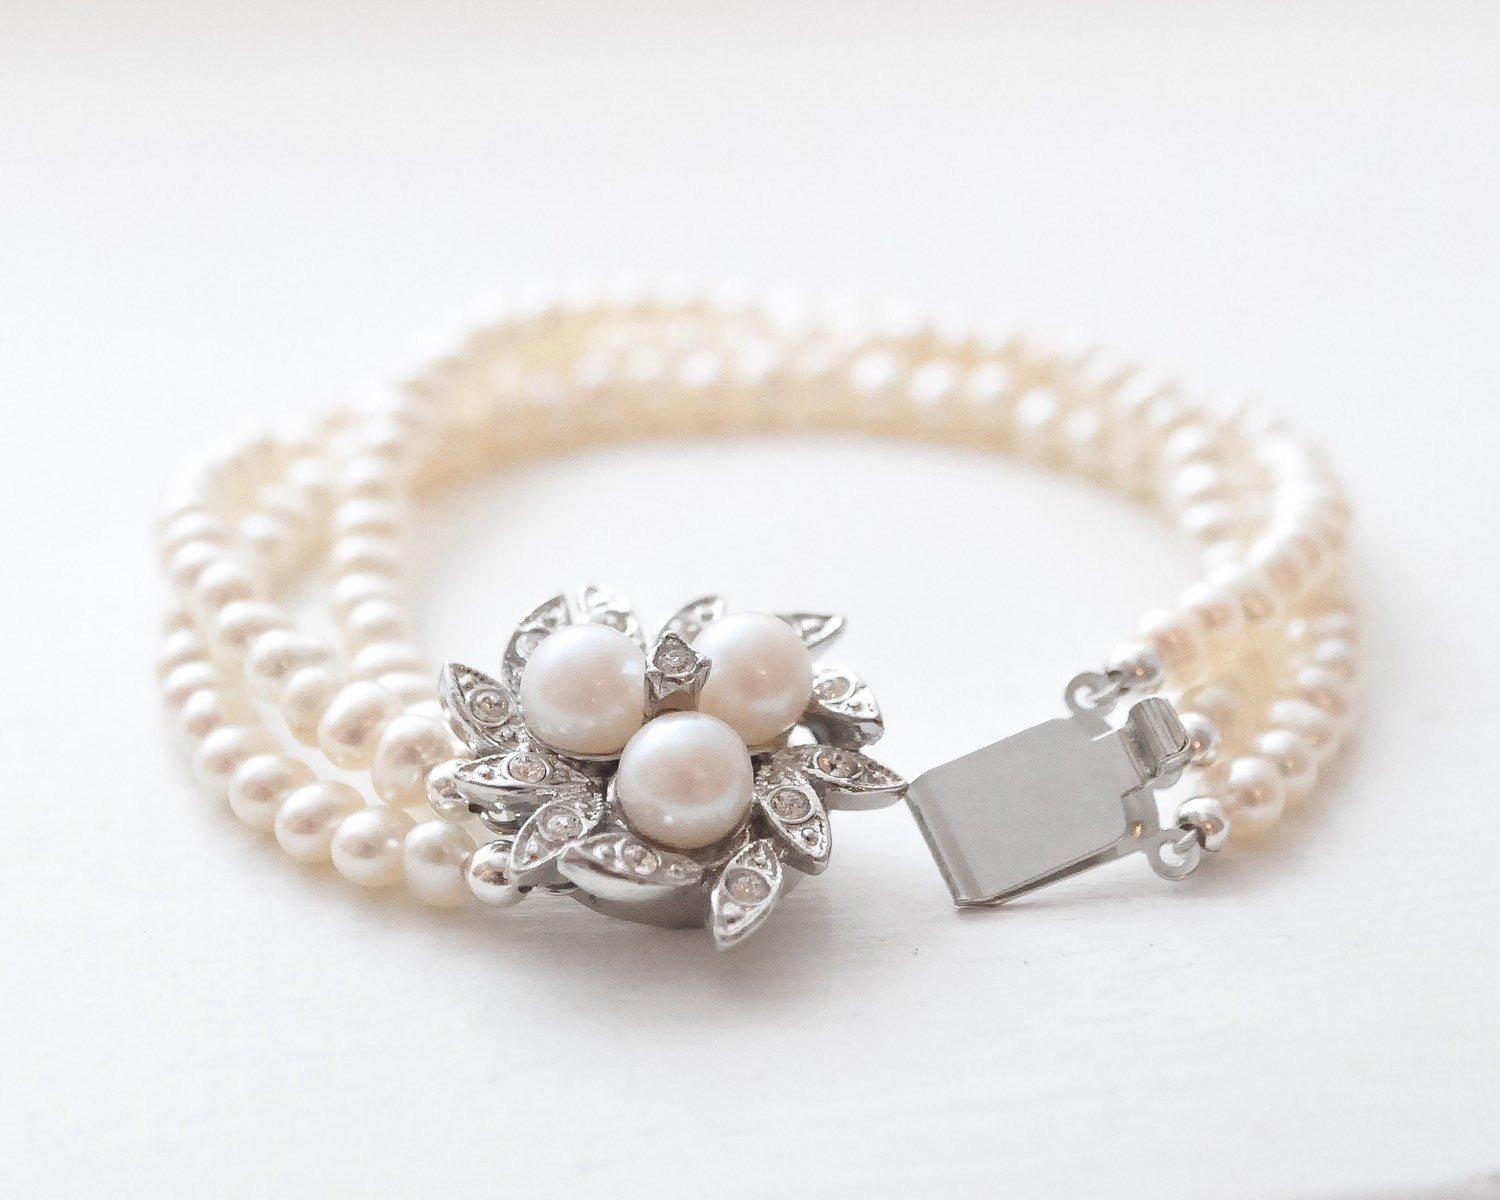 Dainty Freshwater Pearl Cuff Bracelet, with Crystallized Rhodium Box Clasp - Sarah Walsh Bridal Jewellery - 2